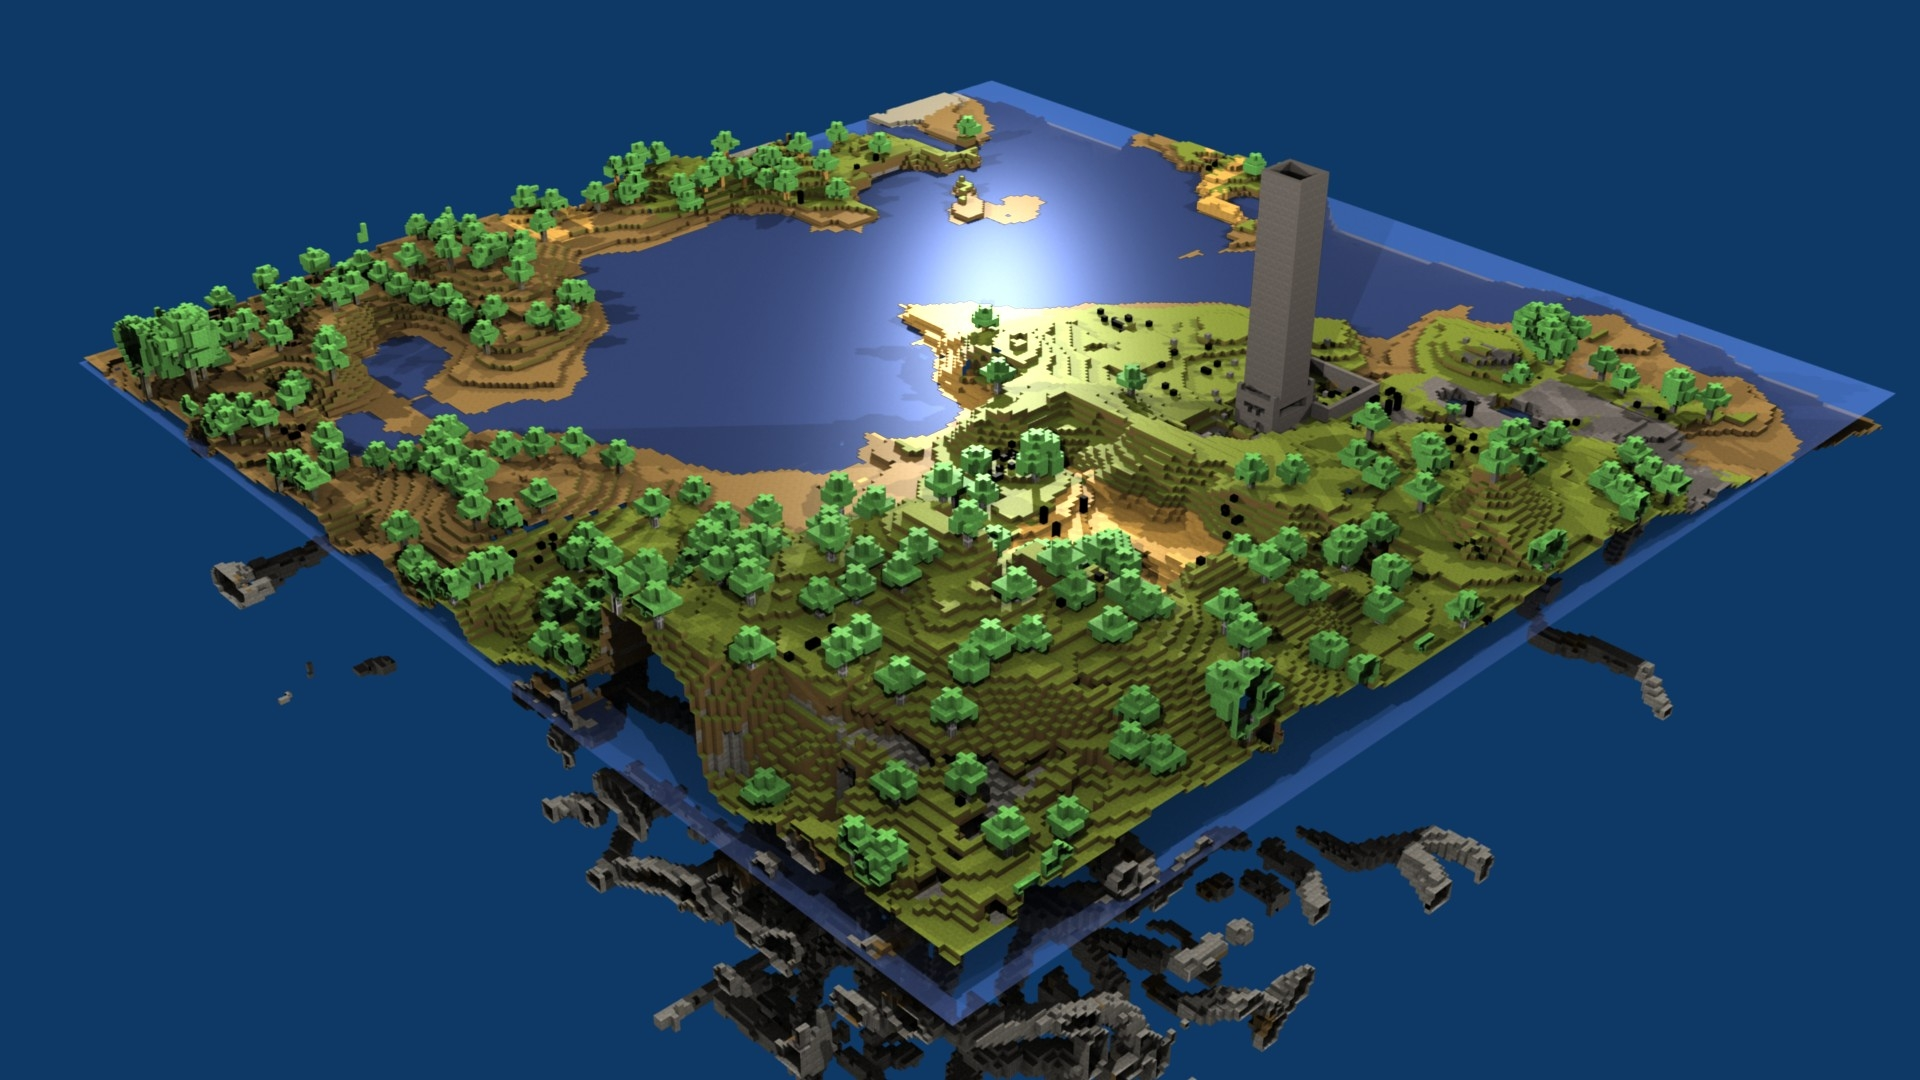 Minecraft world map hd wallpaper hd latest wallpapers minecraft world map hd wallpaper gumiabroncs